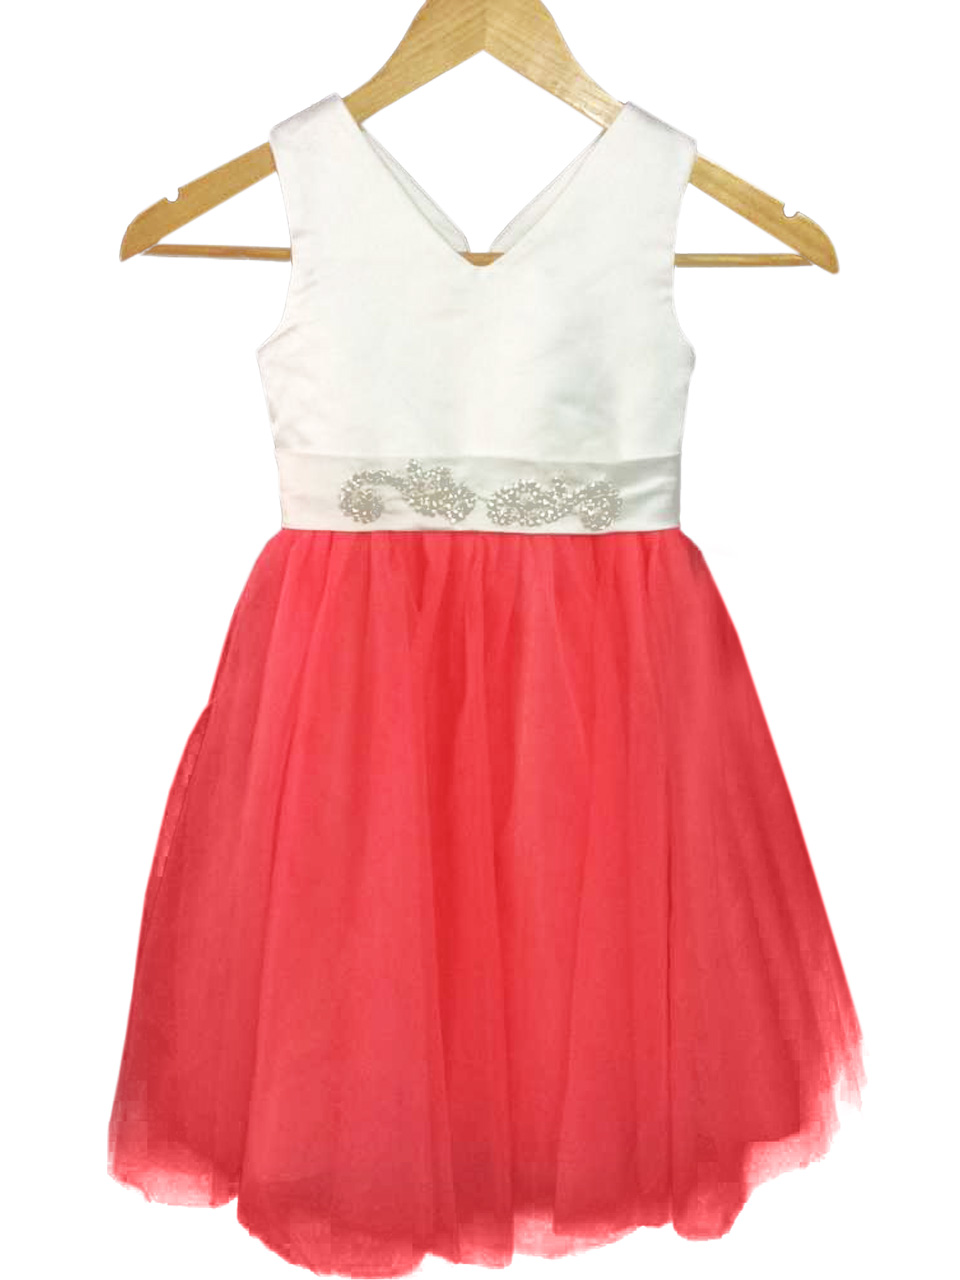 Sleeveless Knee-Length Flower Girls Dresses For Wedding Gown A-Line Kids Prom Dresses Tulle Mother Daughter Dresses With Sashes free shiping flower girls dresses for wedding gown ankle length kids evening gowns tulle mother daughter dresses with sashes